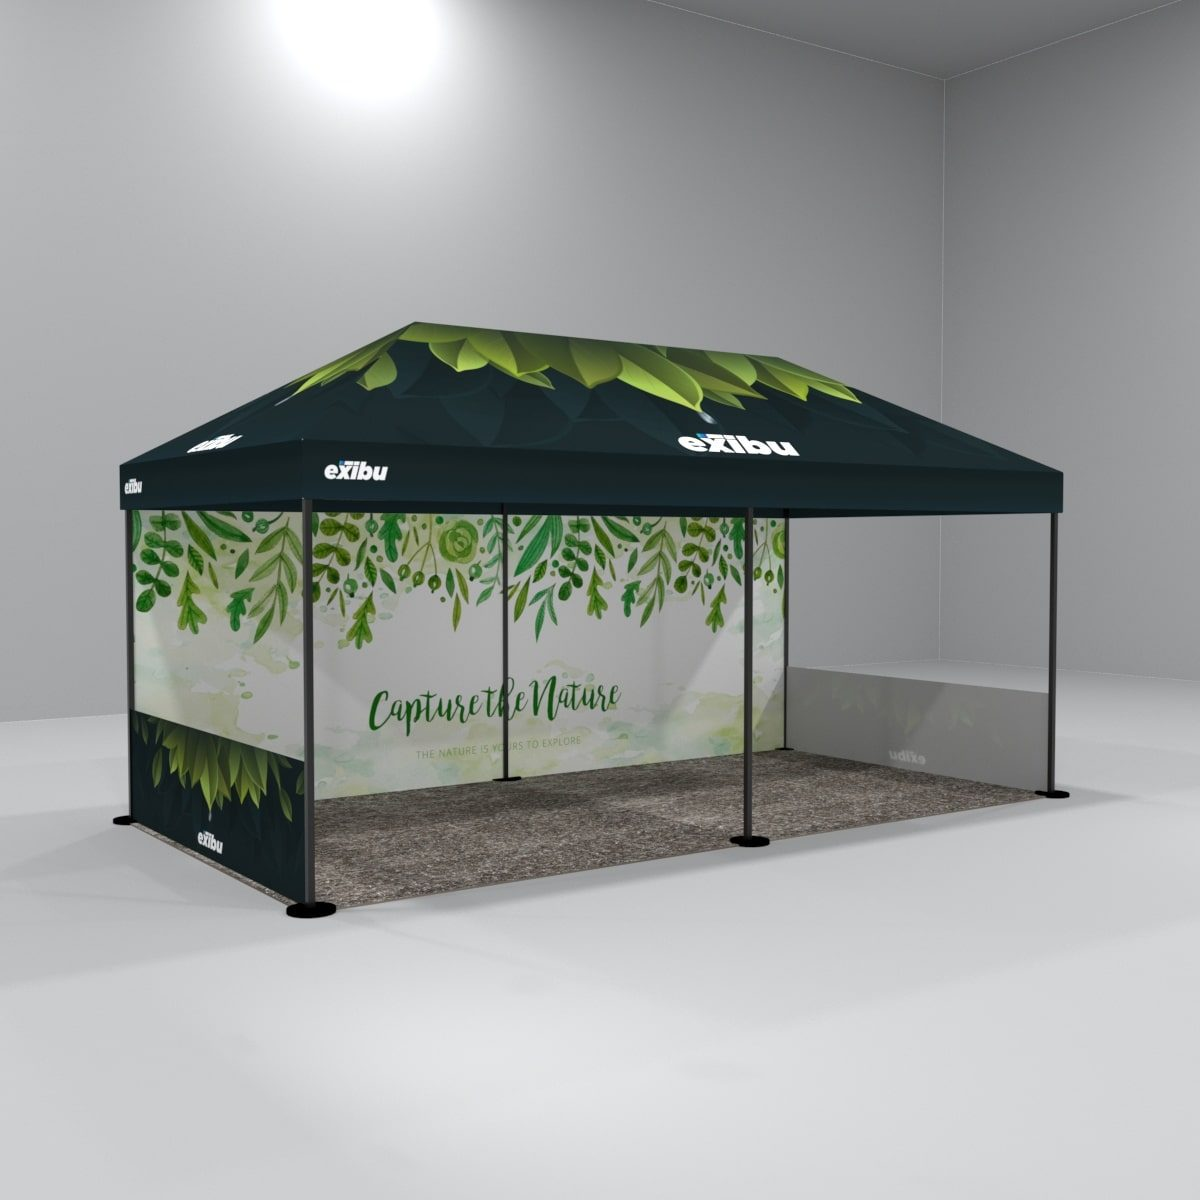 Kit 10 – 3X6 M Gazebo Tent With Full Top Printed And 1 Backdrop And 2 Side Halfwall